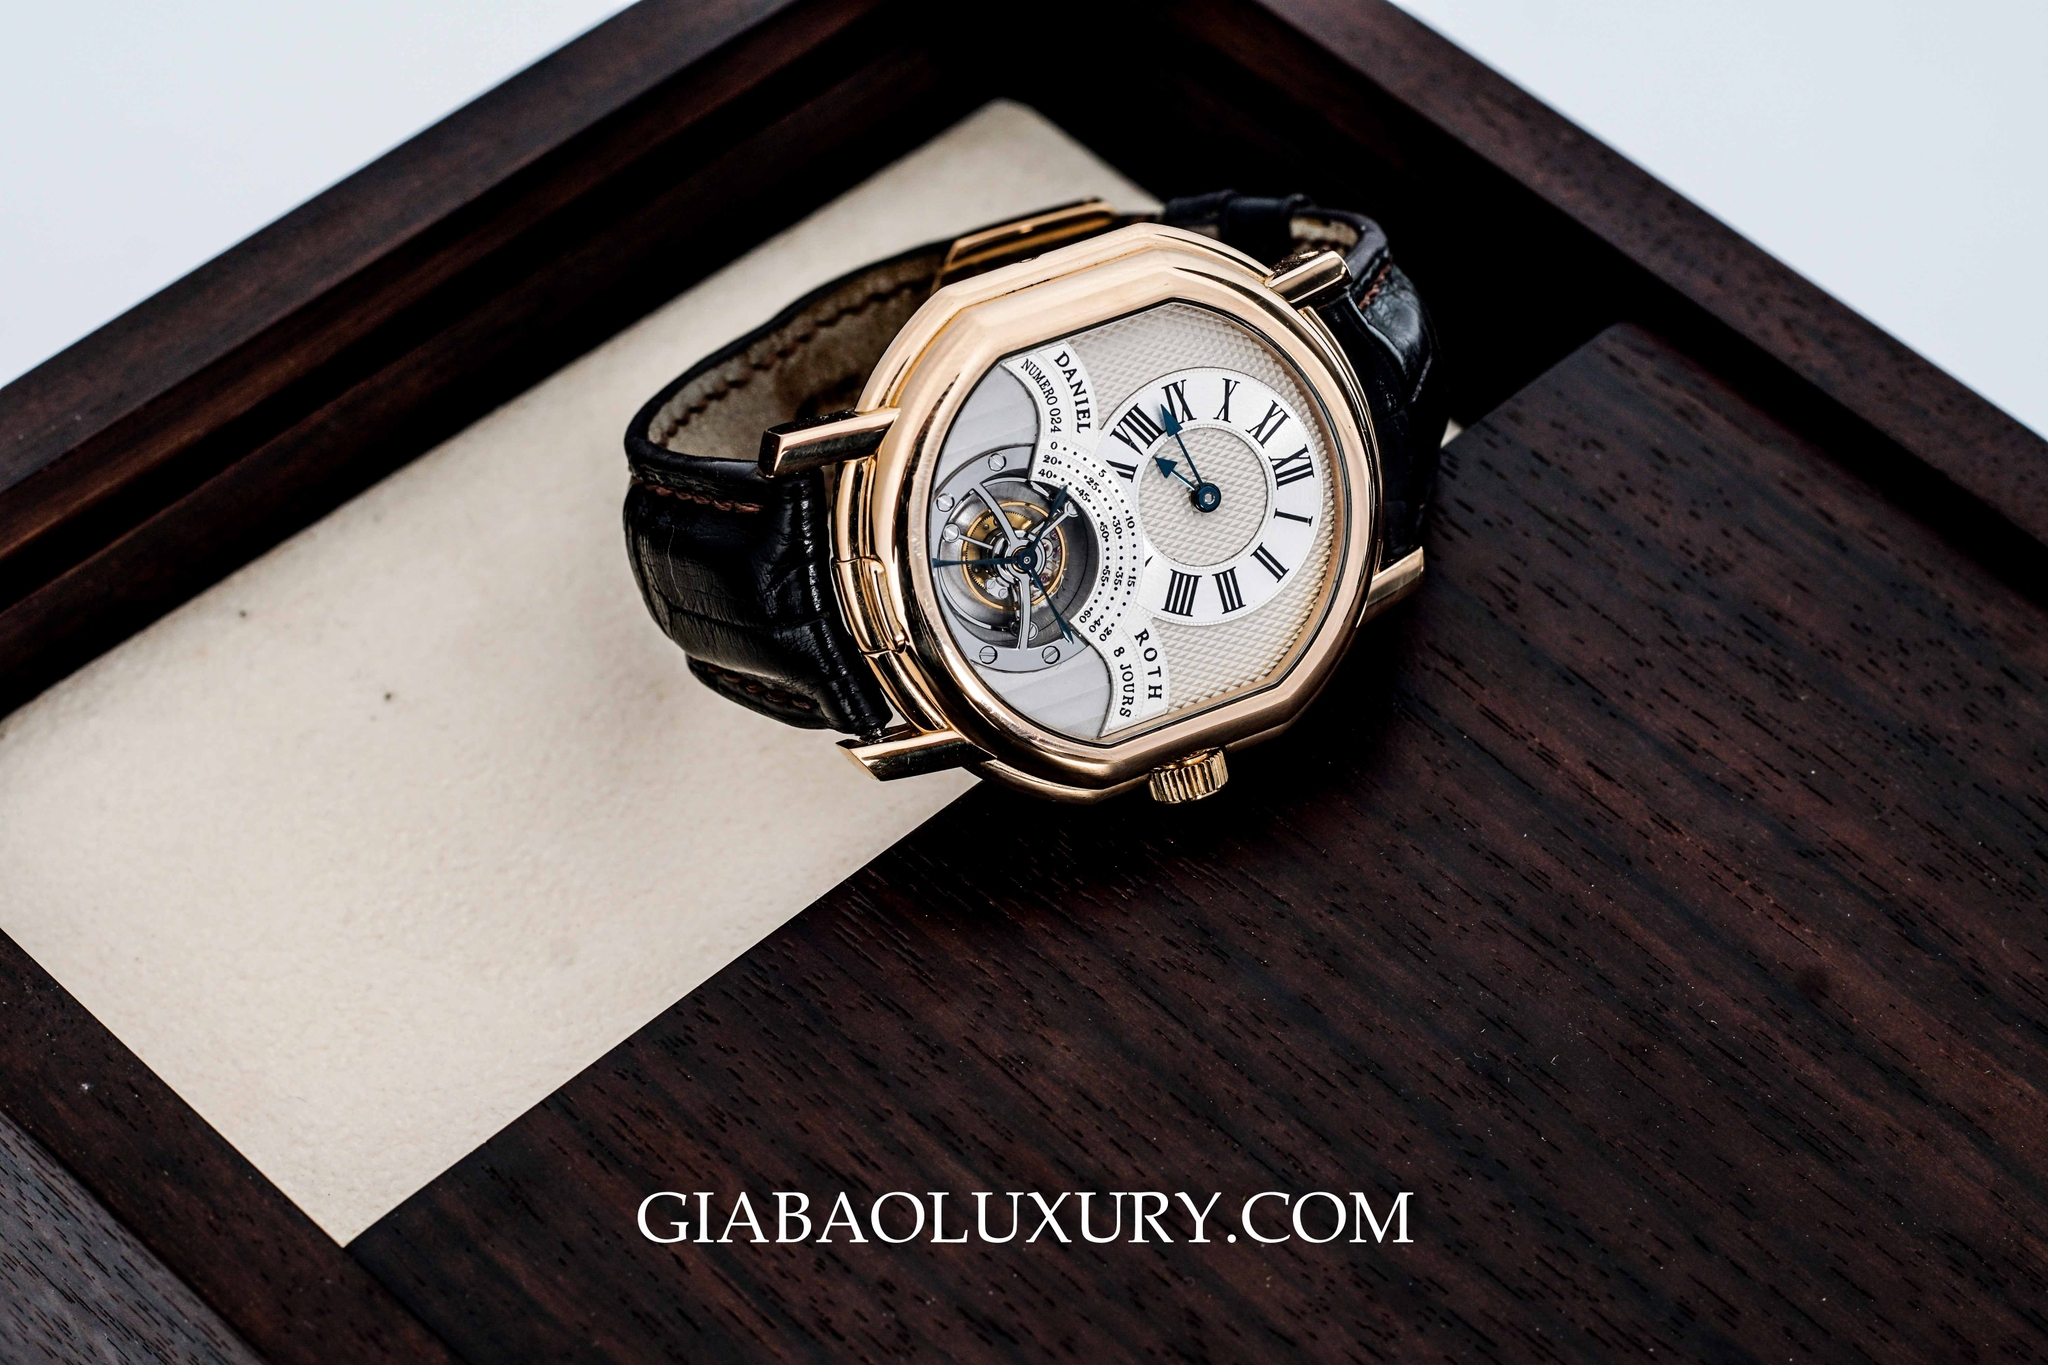 ĐỒNG HỒ DANIEL ROTH TOURBILLON 8 DAYS ROSE GOLD 18K